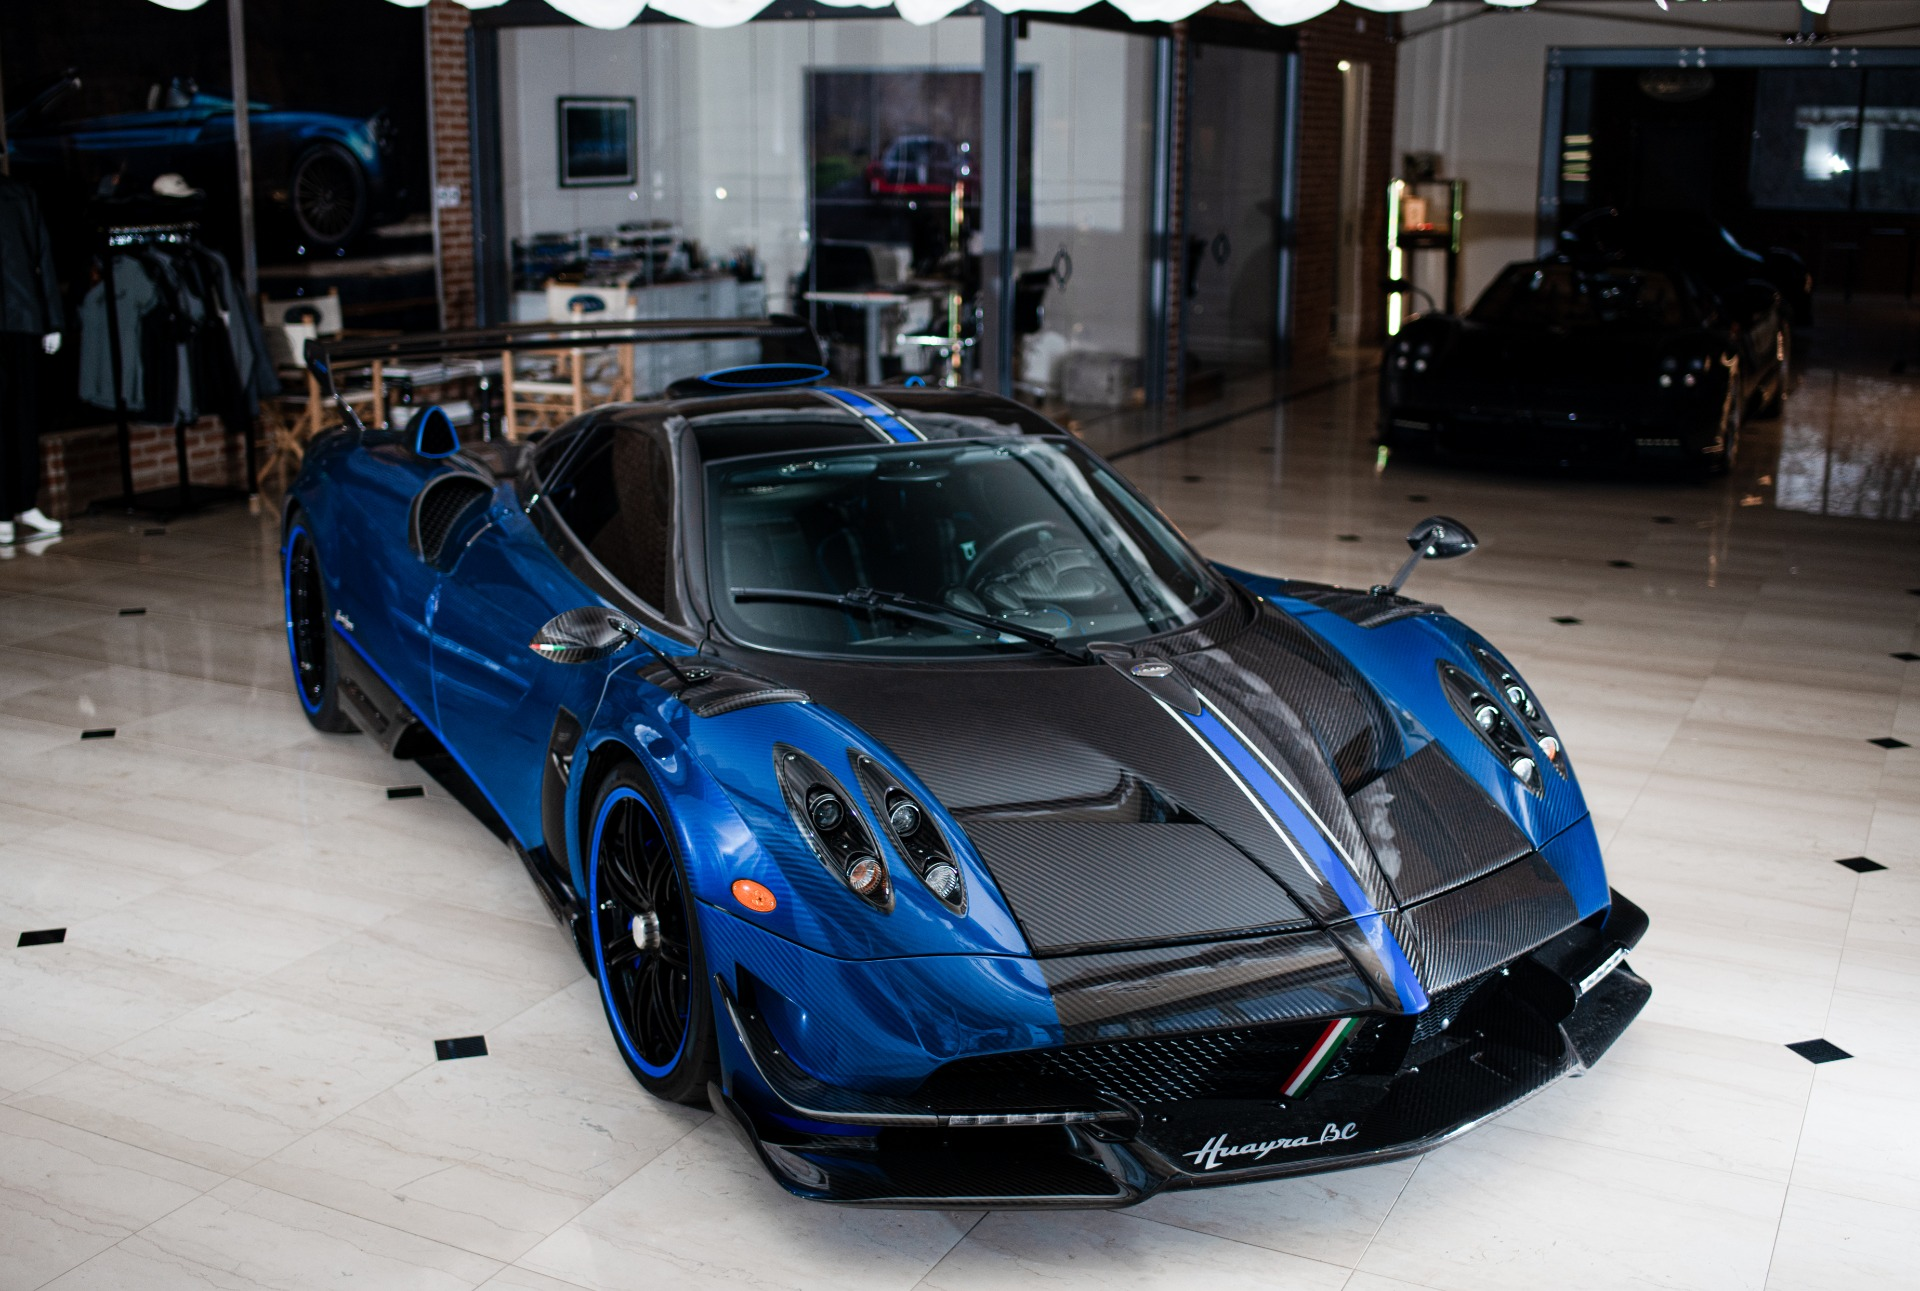 Used 2017 Pagani Huayra BC Macchina Volante For Sale In Greenwich, CT 3051_p2